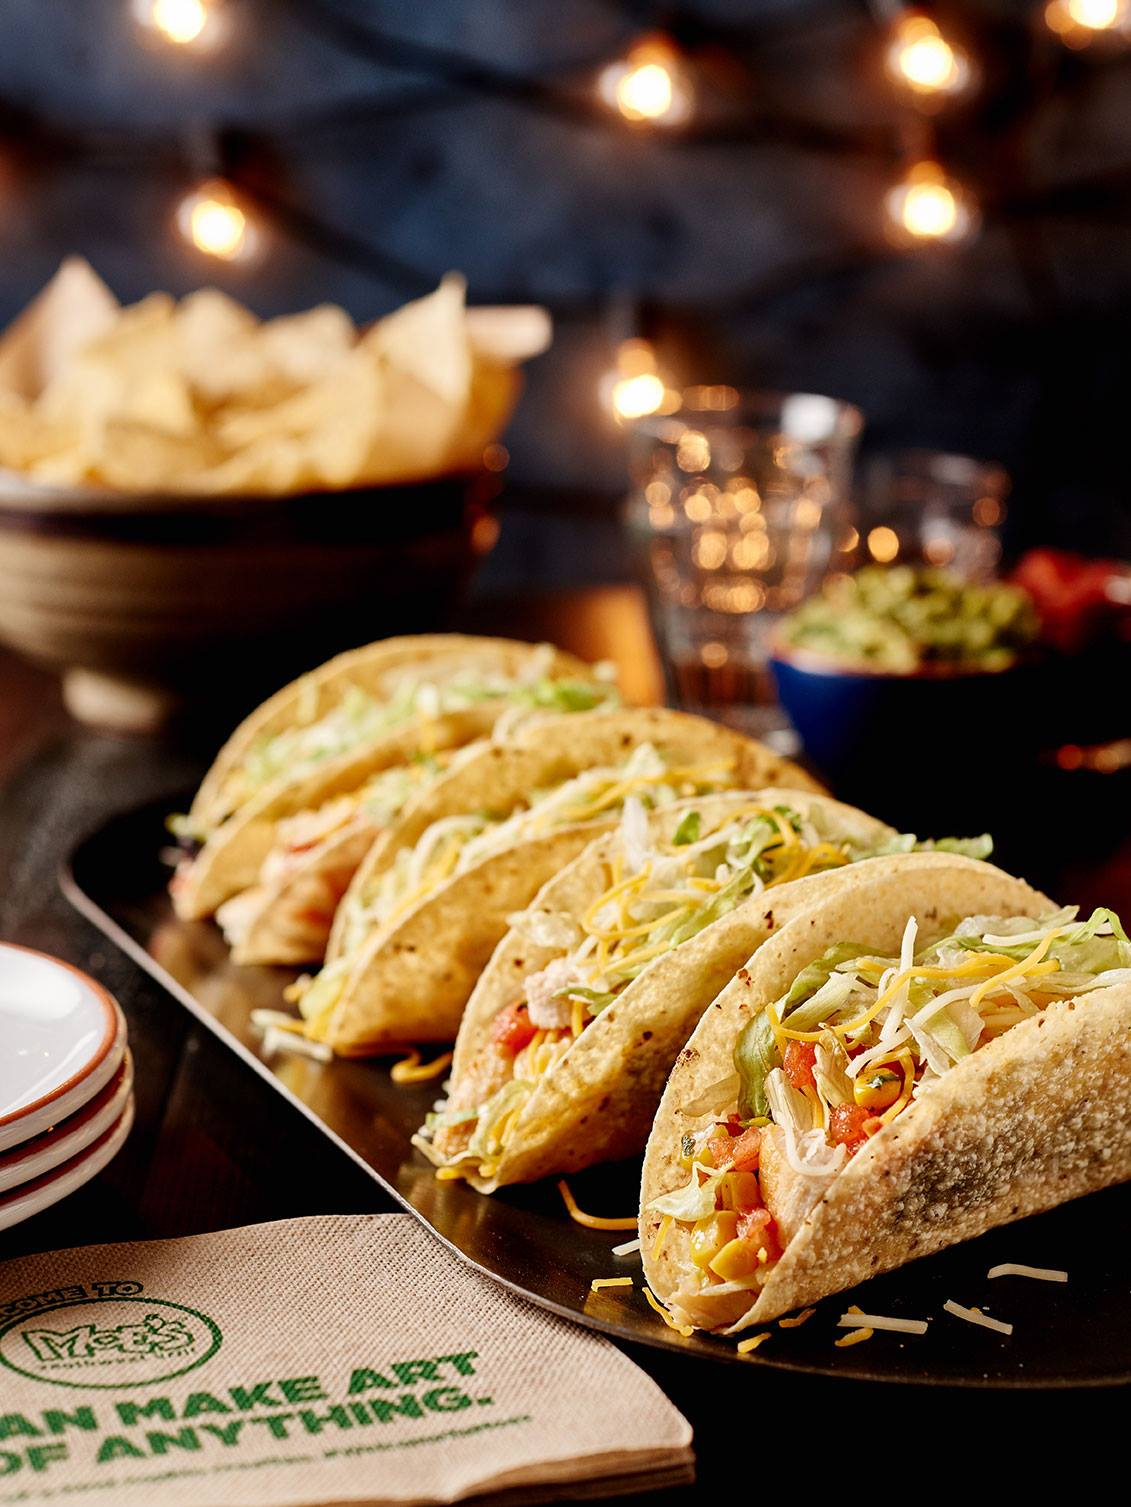 A Moe's fundraiser is a great way to raise money and have fun with your group.